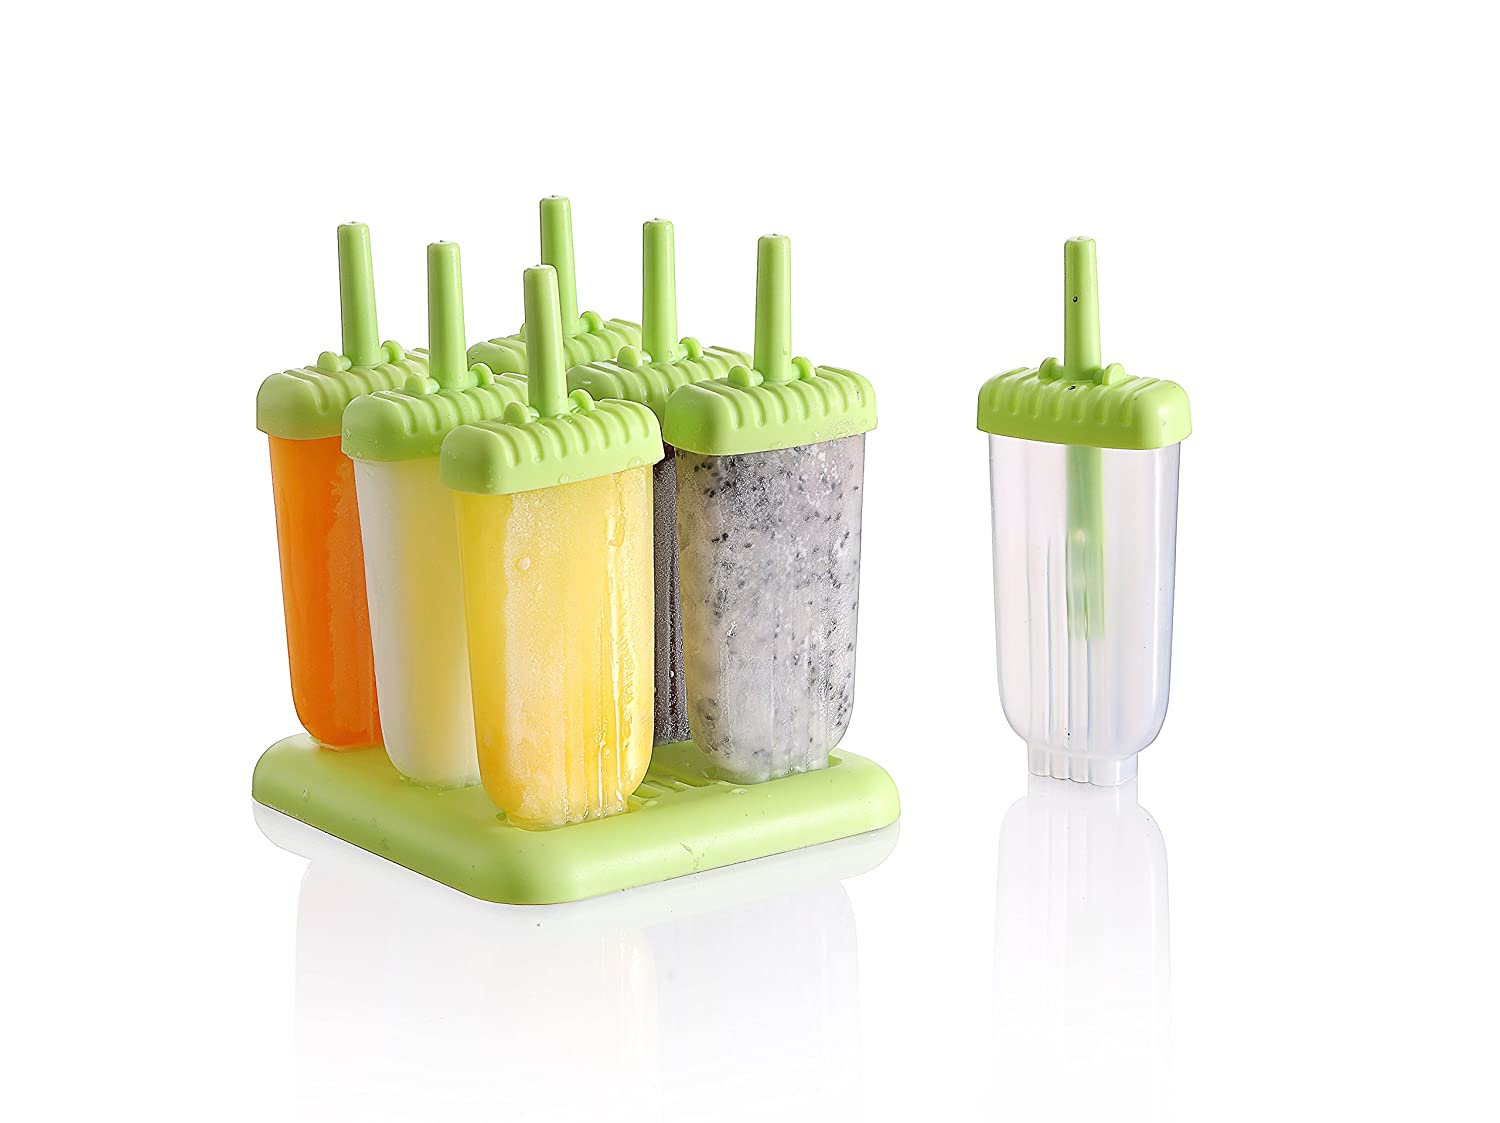 Ice Pop Maker Popsicle Tray Mold set - (6 pack set) Hampton Home